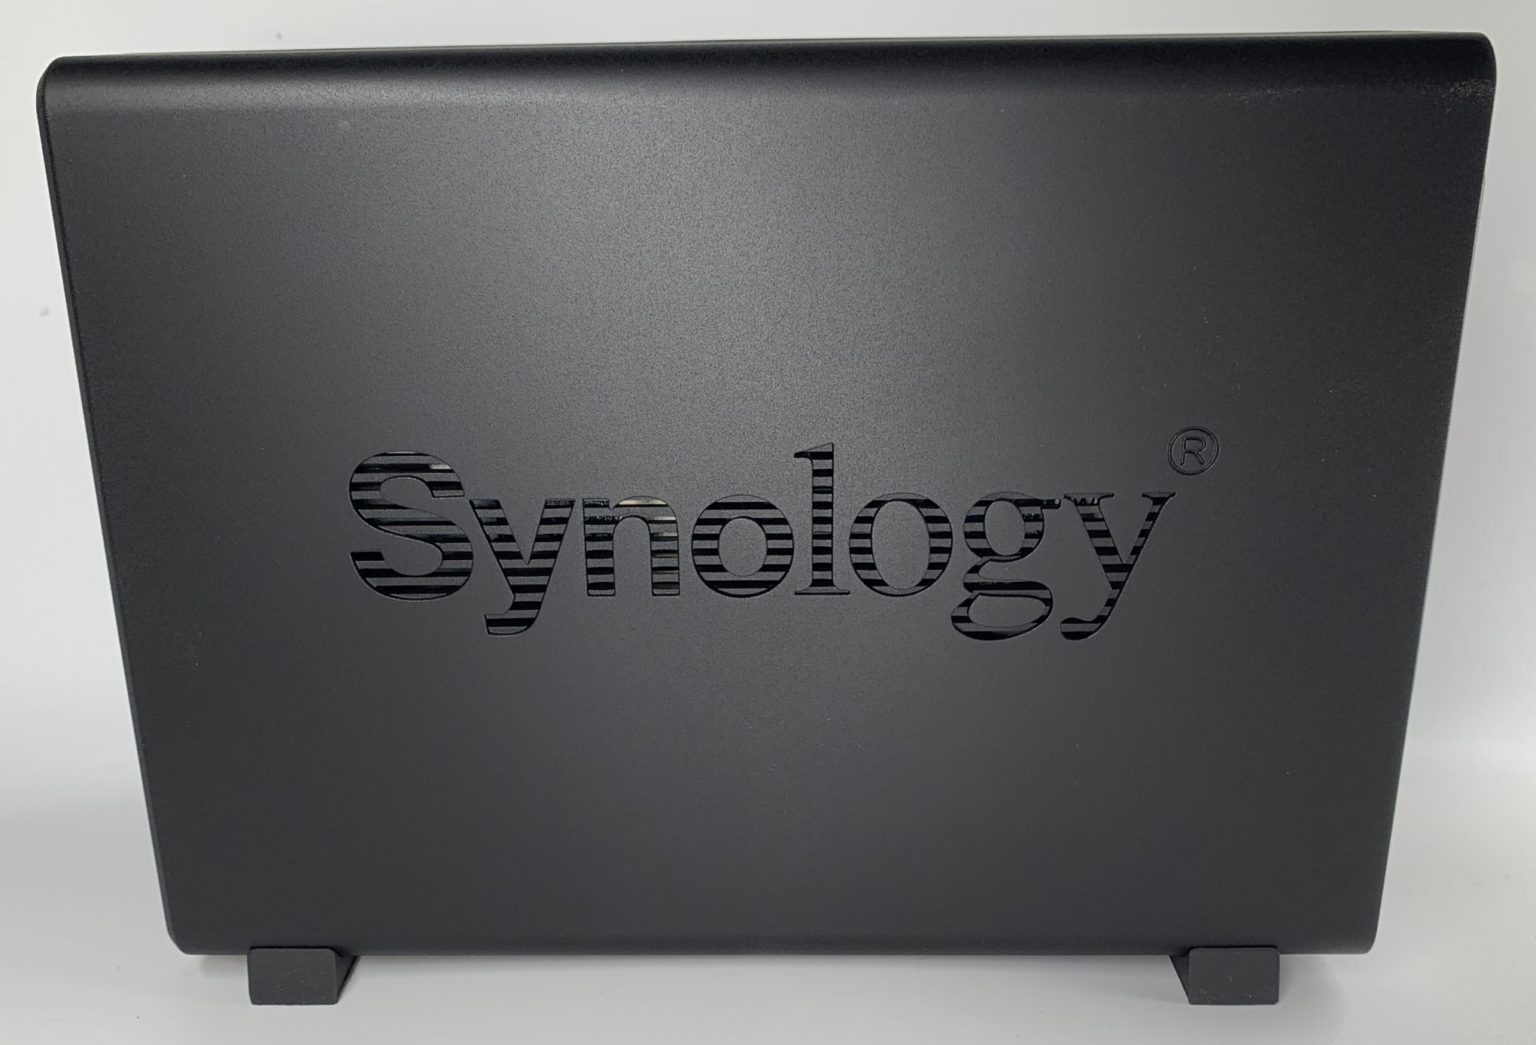 synology side